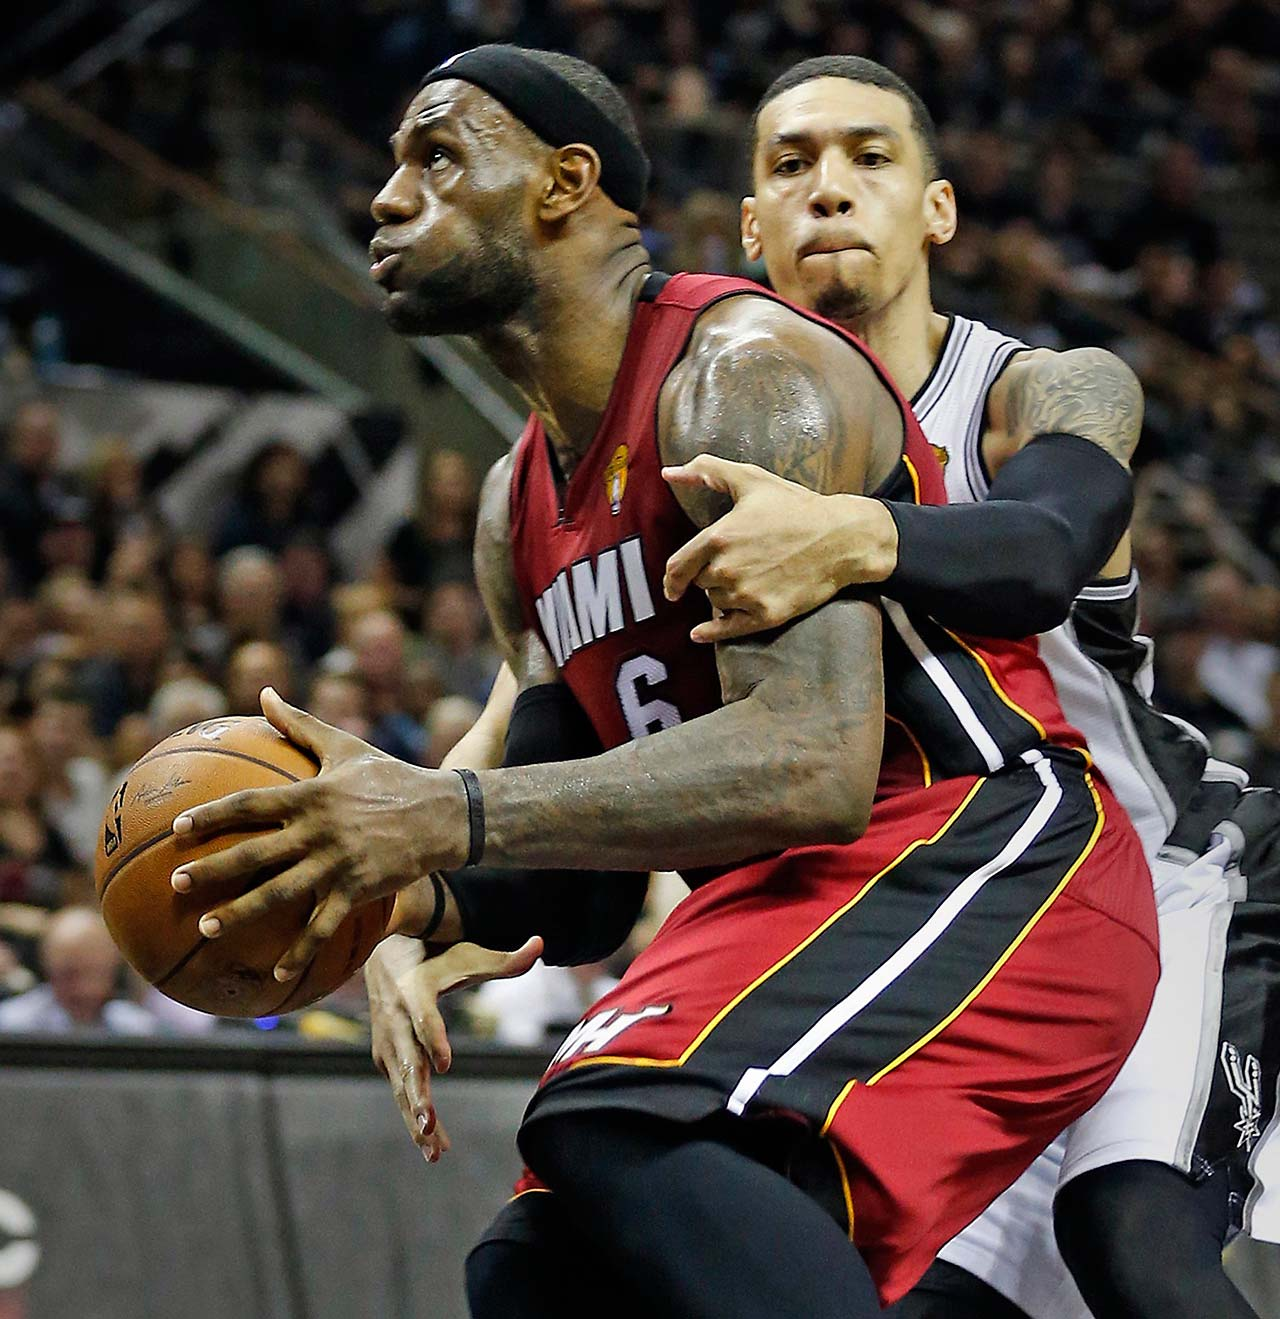 LeBron James is fouled by the San Antonio Spurs' Danny Green in Game 1 of the 2014 Finals on June 5 in San Antonio.